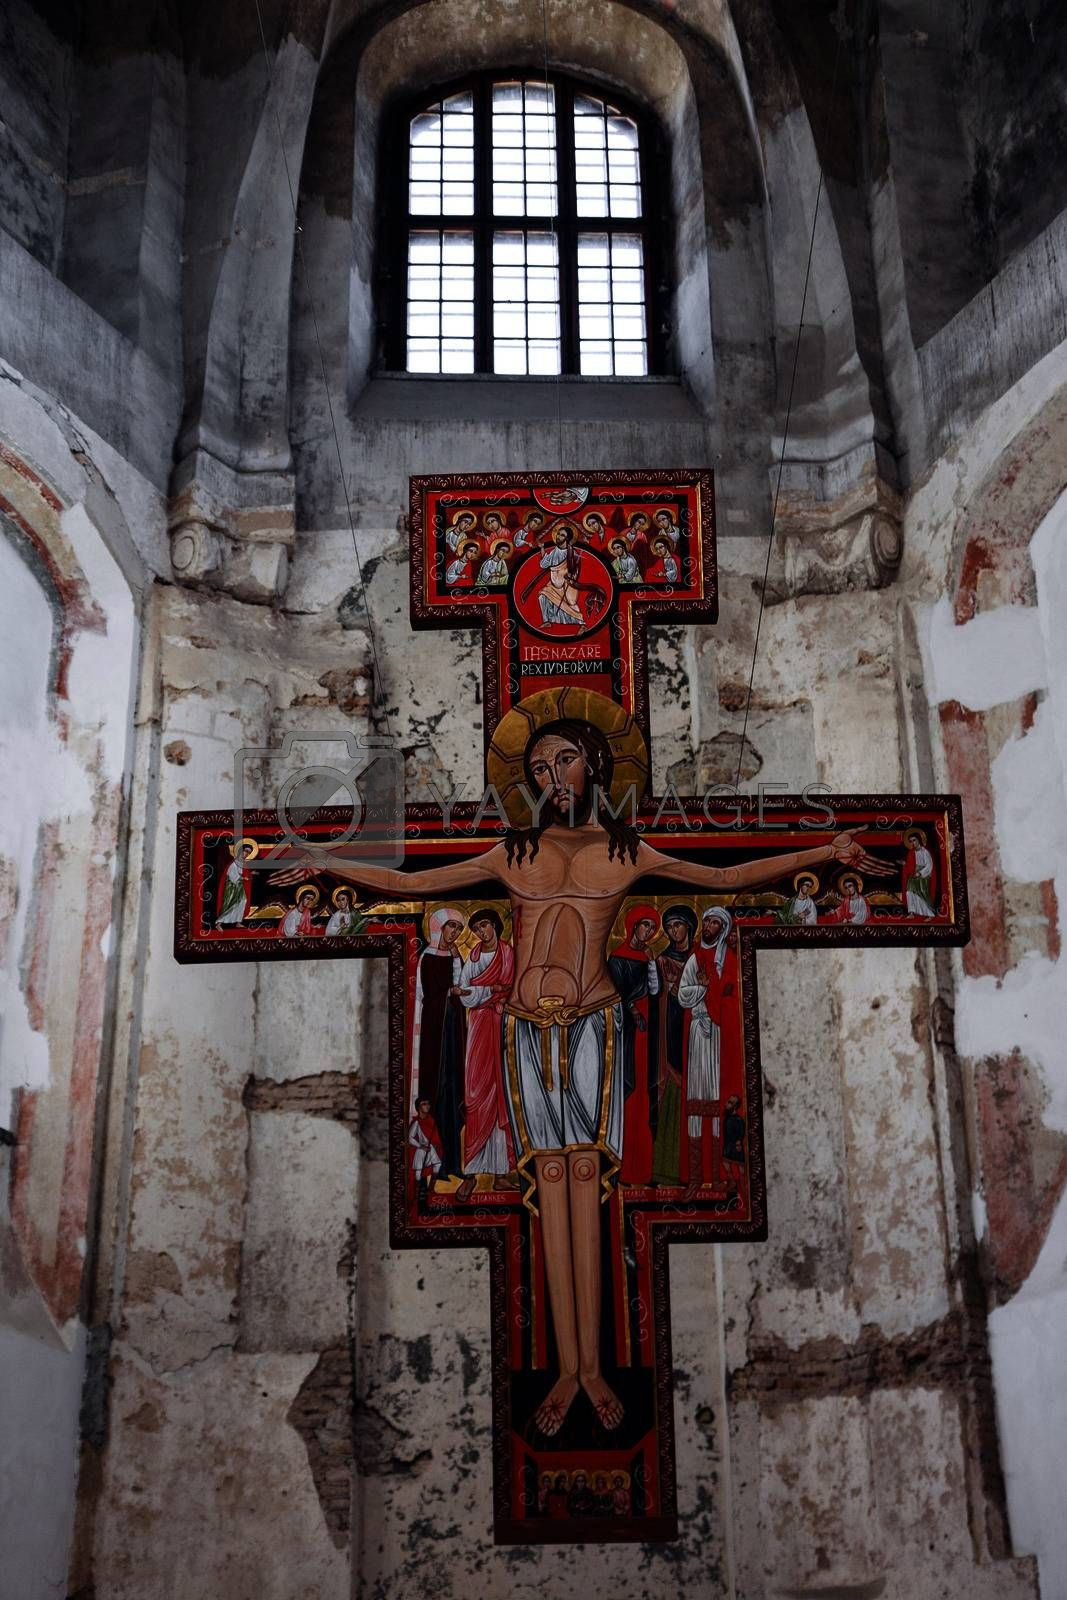 Altar with Jesus in the interior of weathered orthodox Christian church in Vilnius, Lithuania